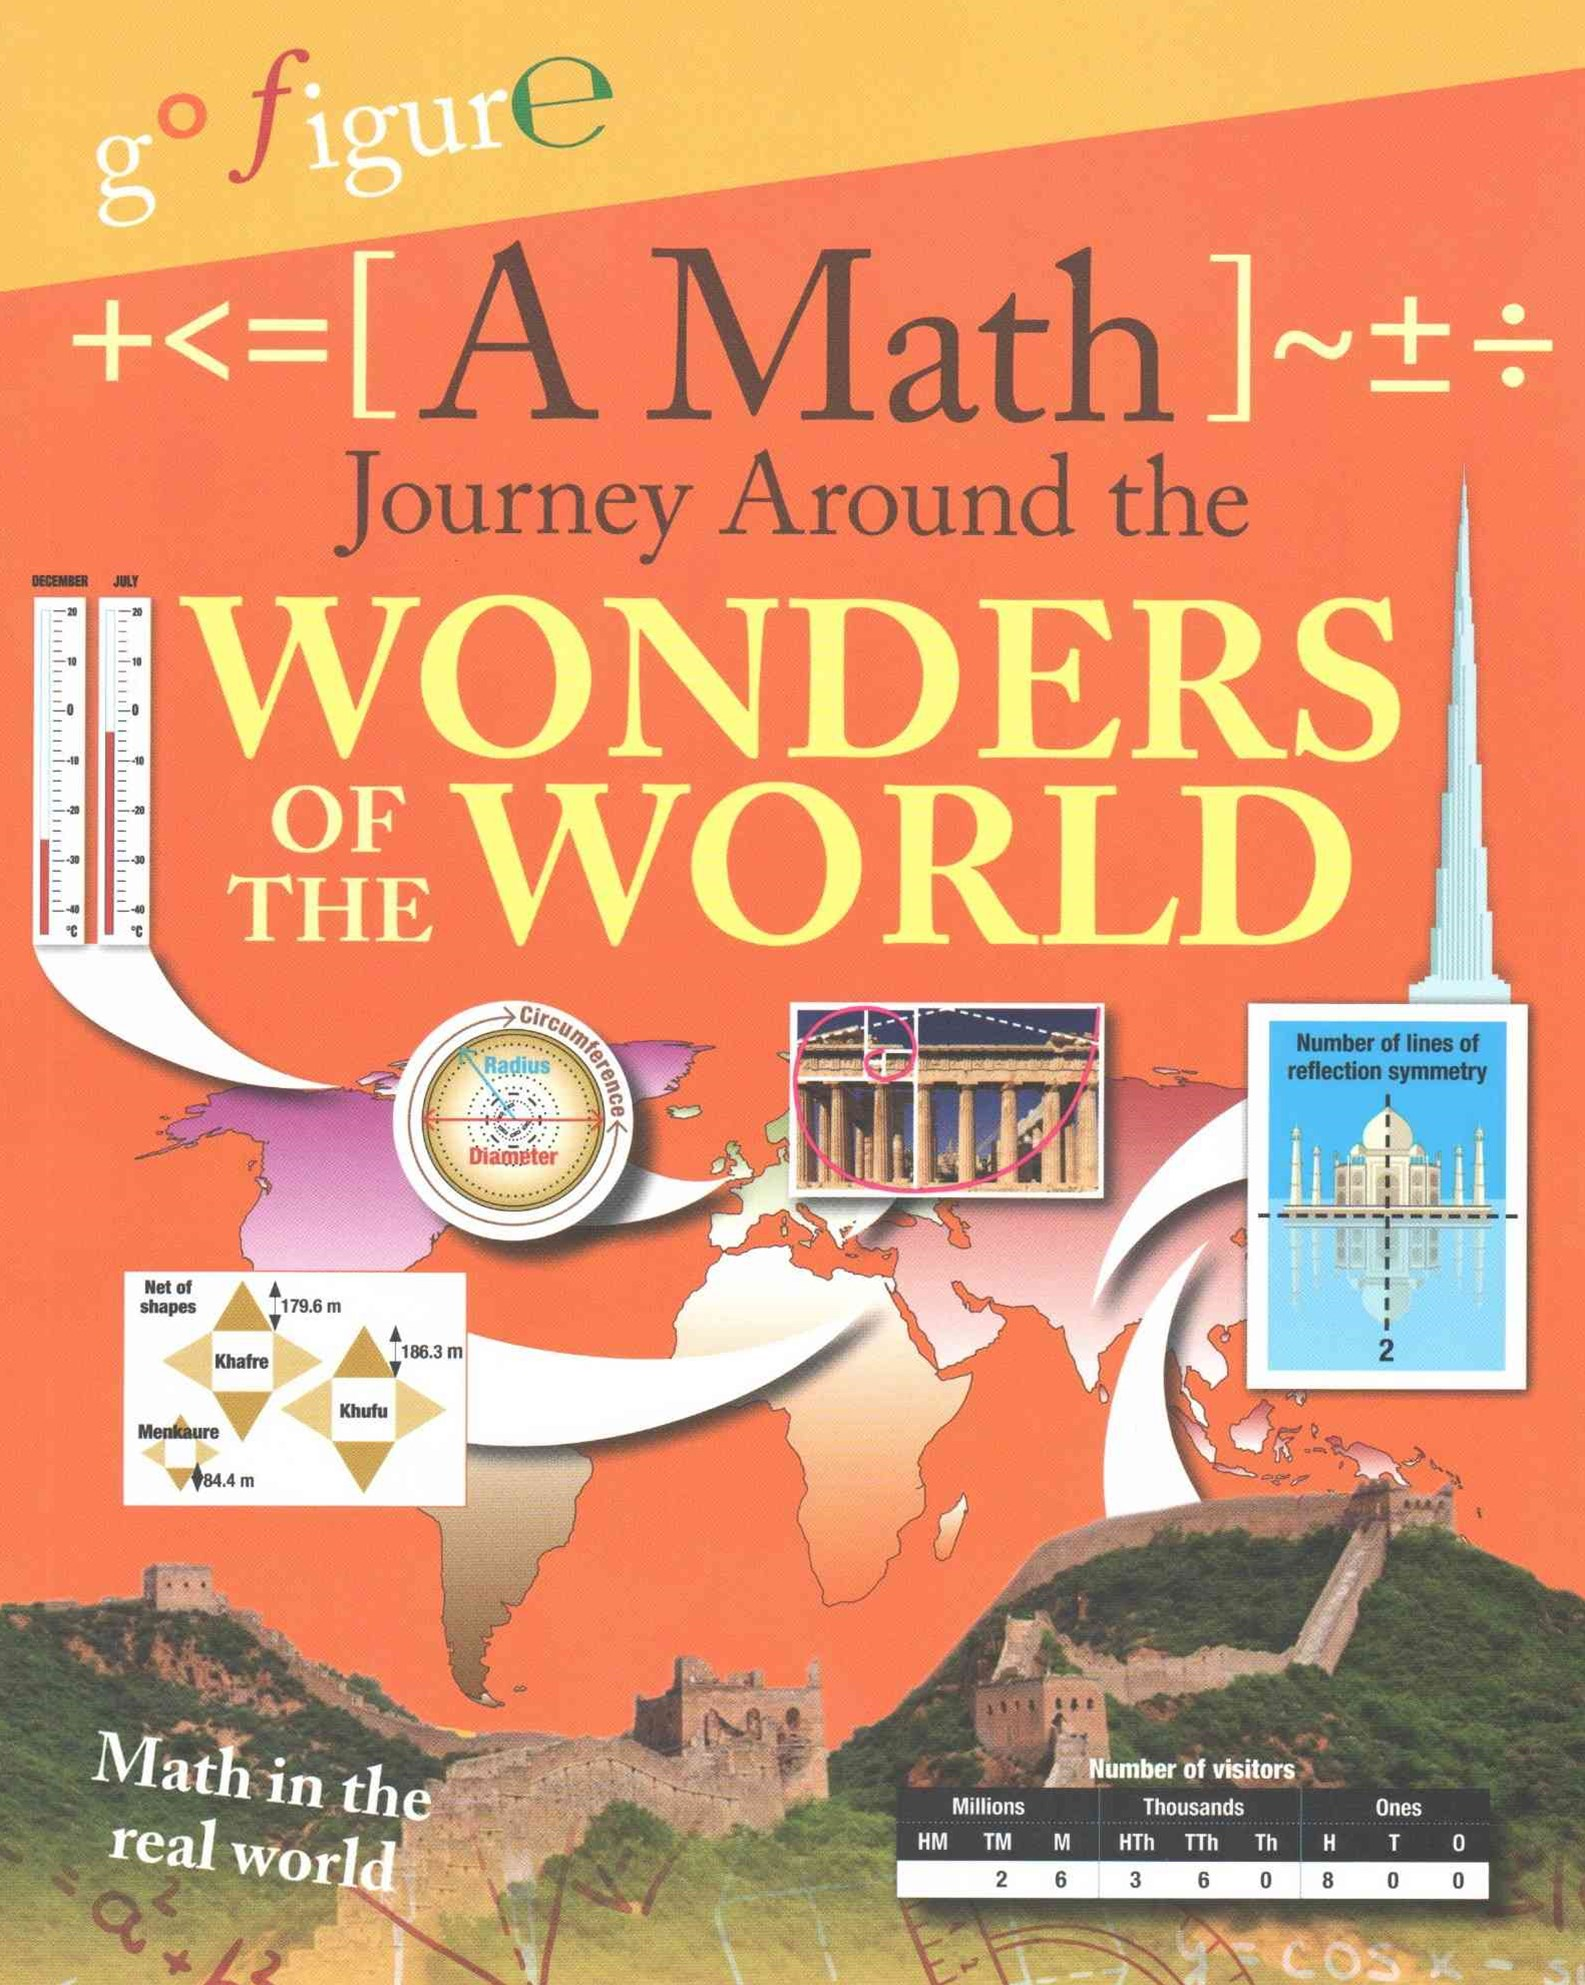 A Math Journey Around the Wonders of the World